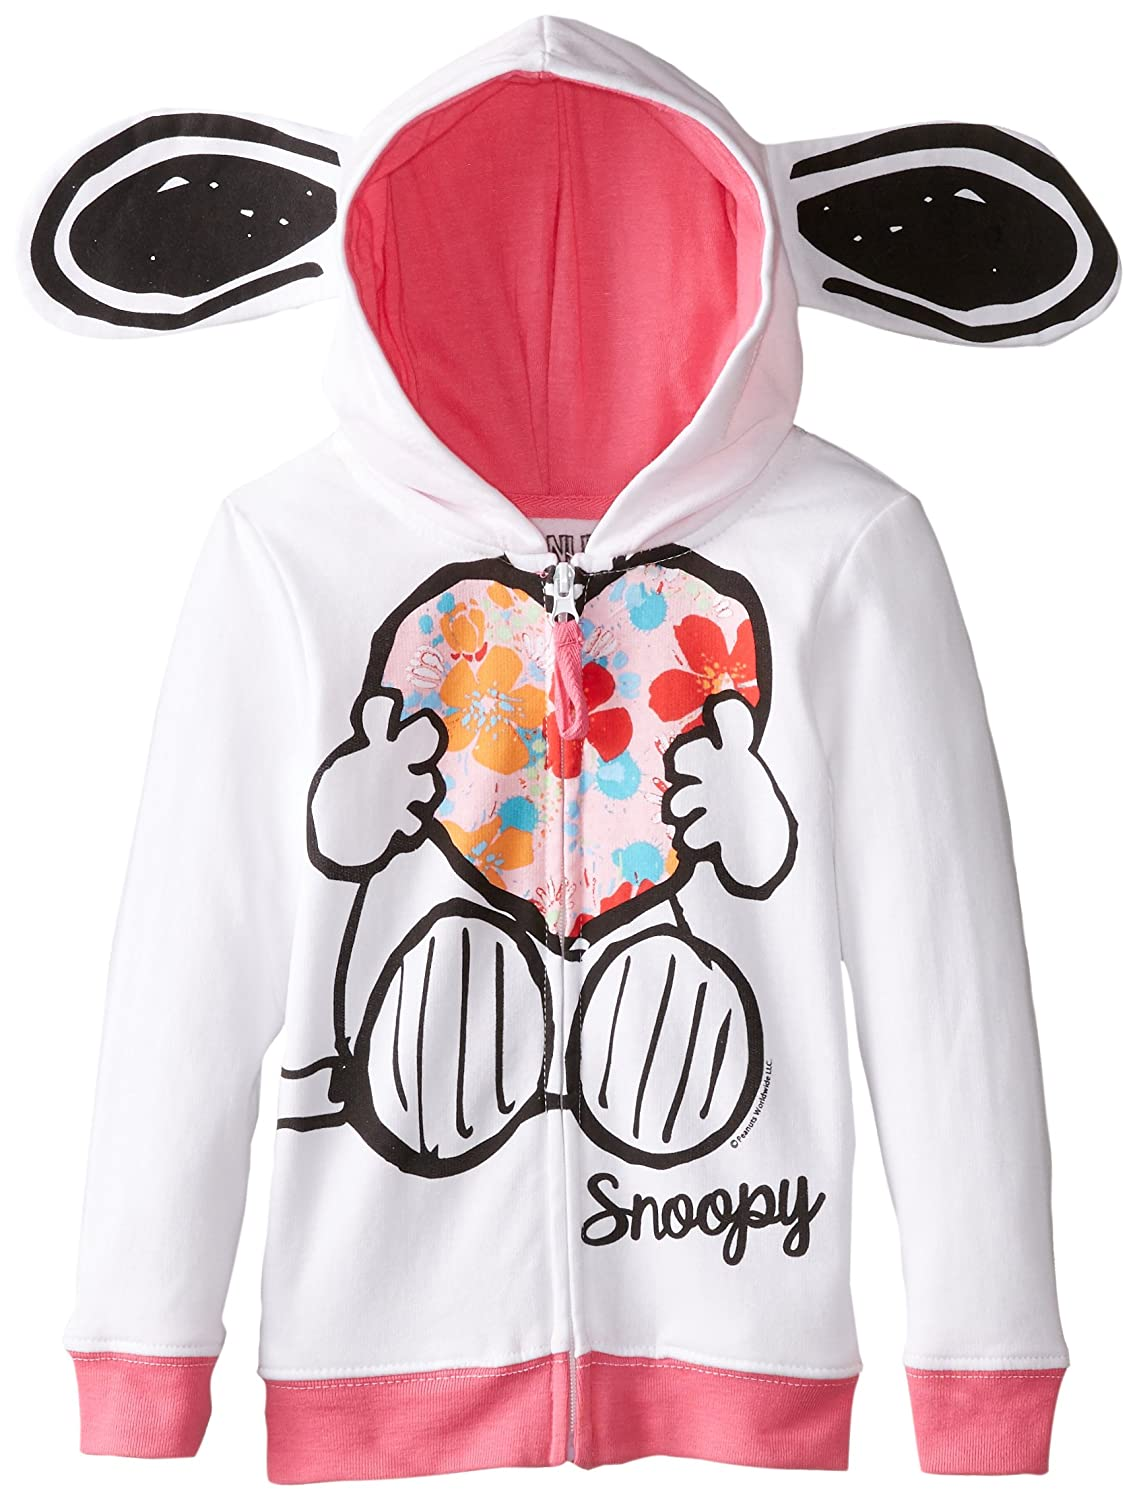 Peanuts Girls' Snoopy Fleece Hoodie with Ears Freeze Children's Apparel PVSTF68-5T52